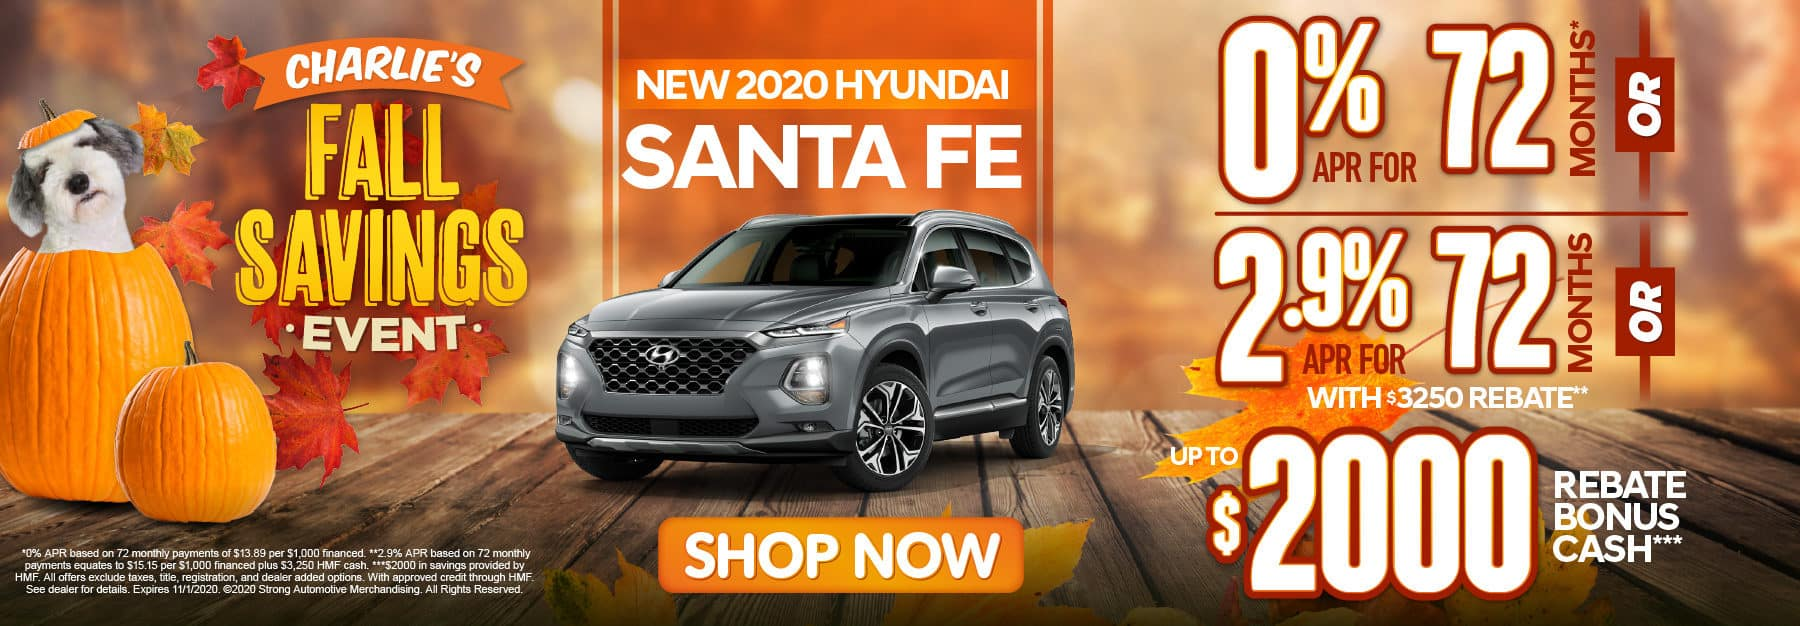 2020 Santa Fe 0% APR for 72 months - click here to view inventory